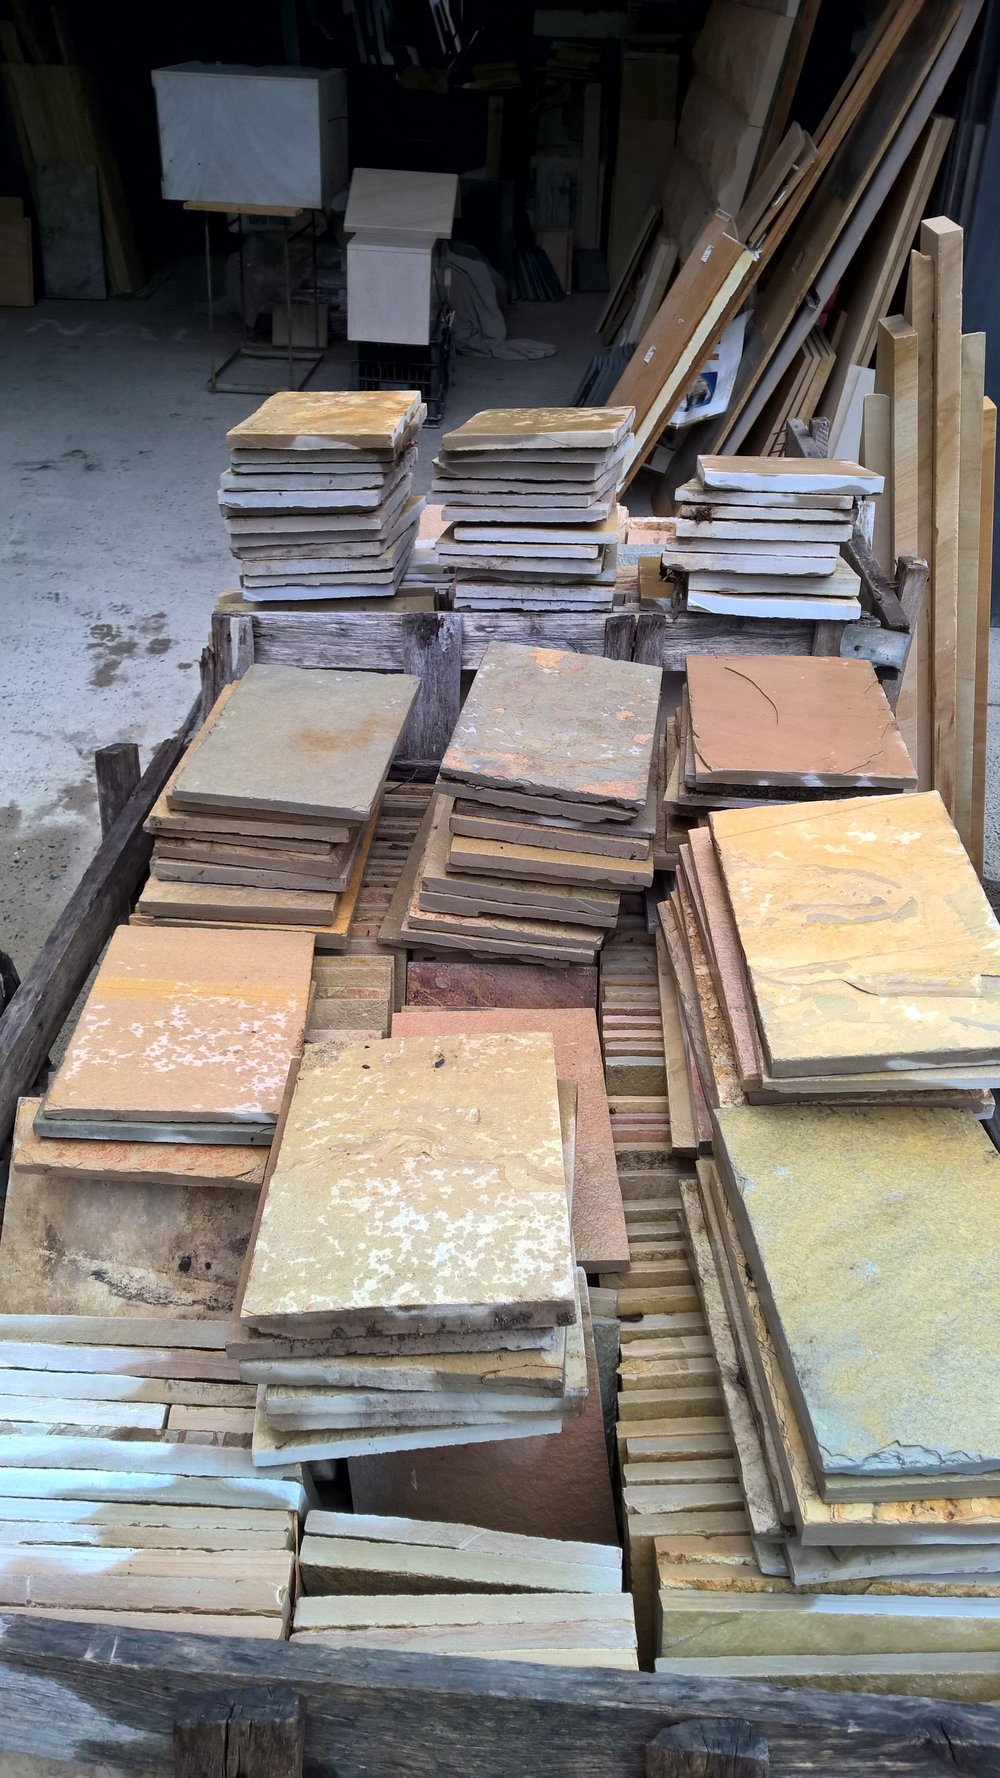 1. Multicolour tiles Golden Amber 200x300 sawn edges about 15 to 20mm thick. Hard good for inside outside. $30 per m2